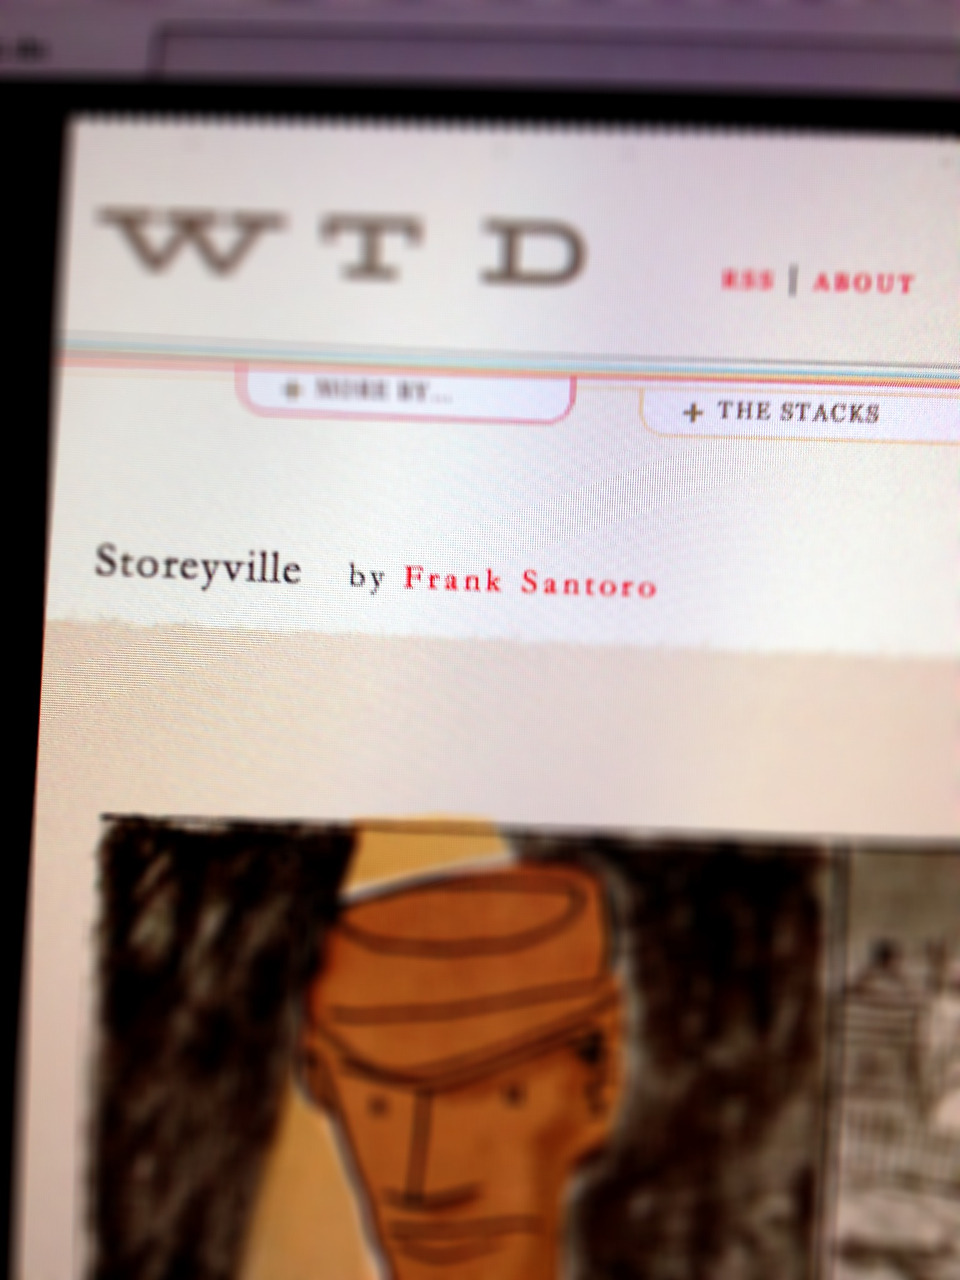 Storeyville by Frank Santoro is starting on WTD